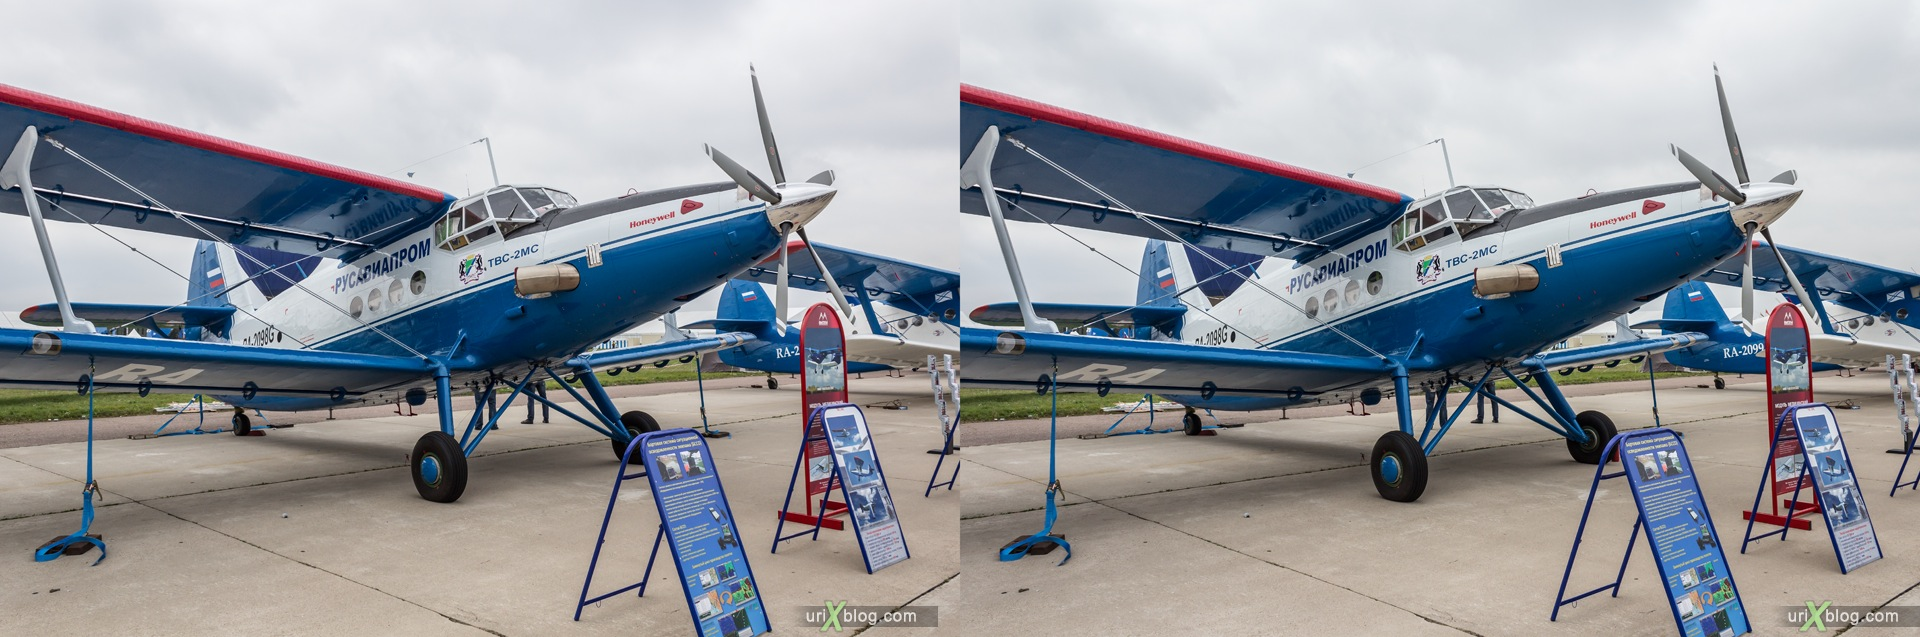 2013, TVS-2MS (An-2MS), MAKS, International Aviation and Space Salon, Russia, Ramenskoye airfield, airplane, 3D, stereo pair, cross-eyed, crossview, cross view stereo pair, stereoscopic